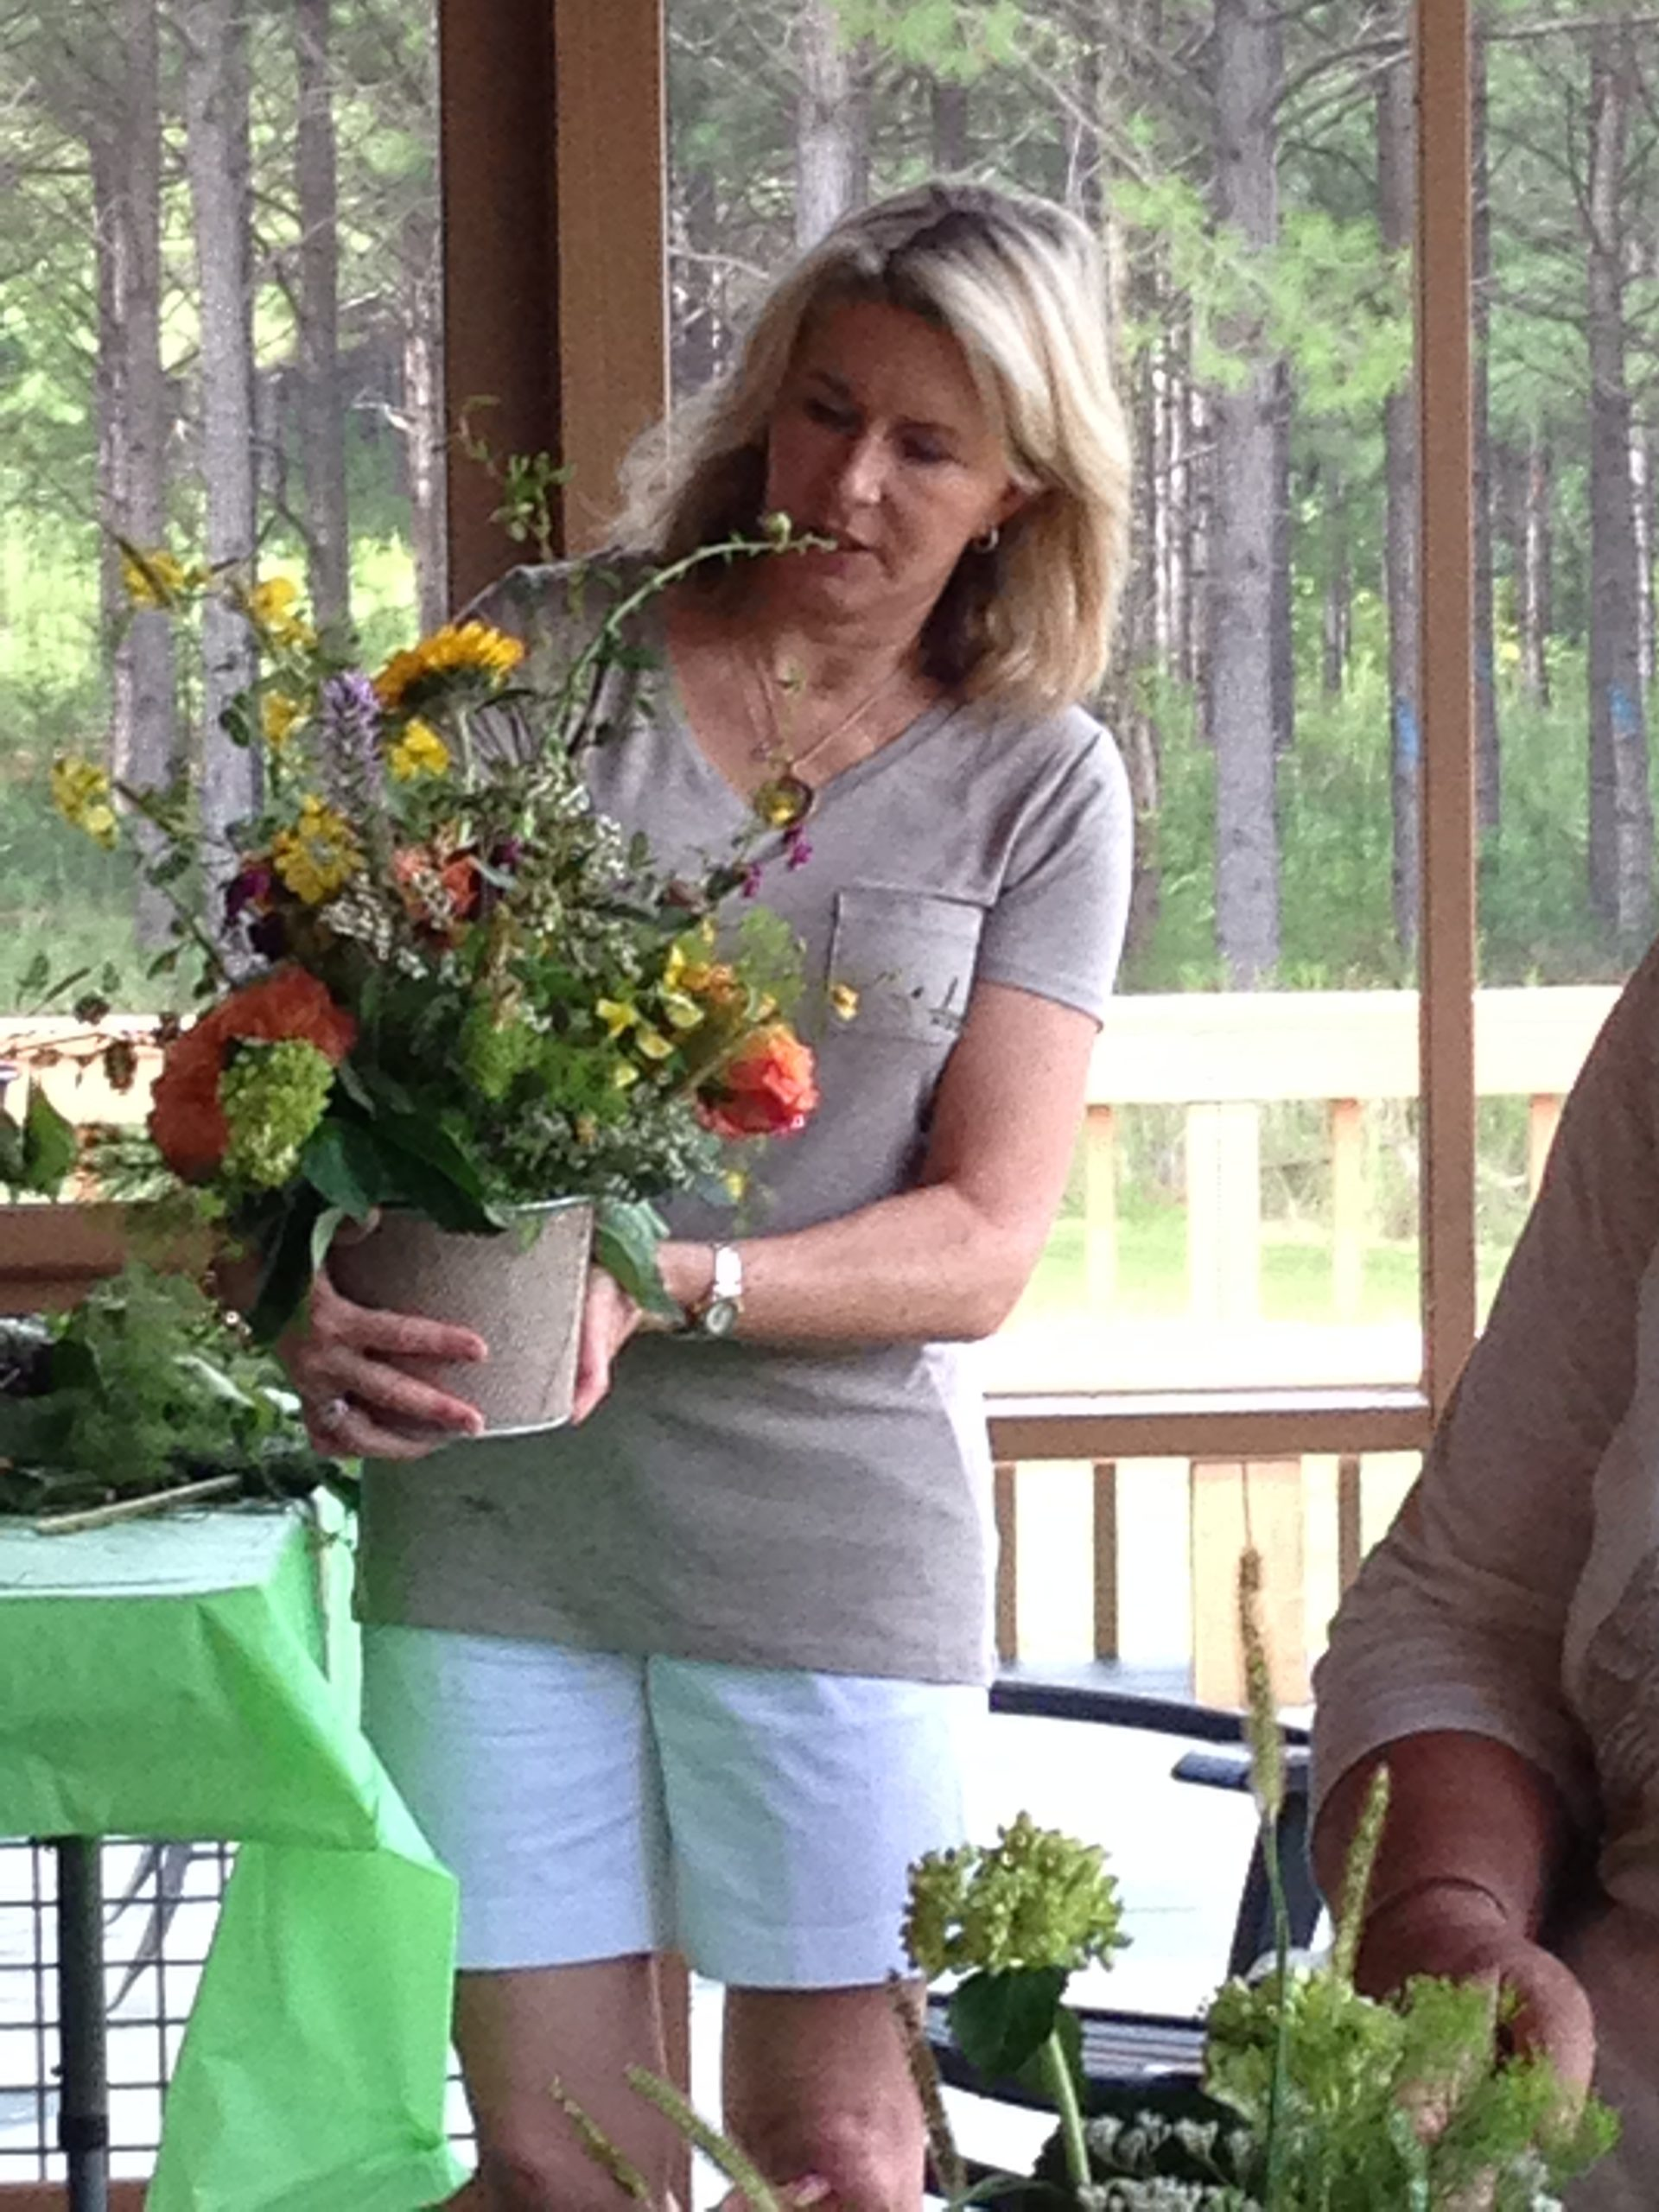 Flower Arranging in the Woods